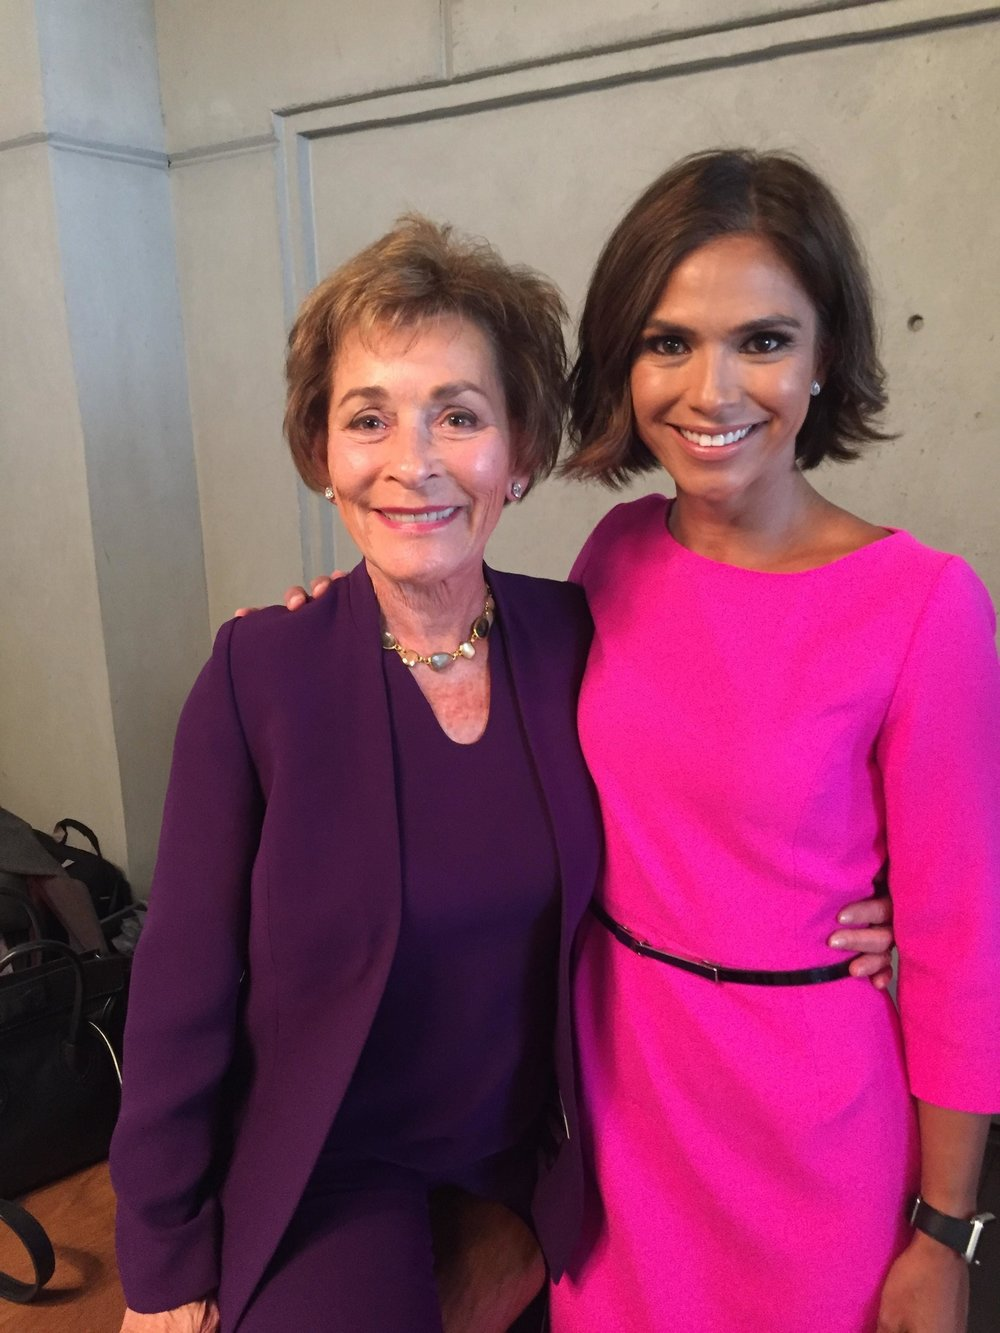 Judge Judy and WCBS-TV anchor Kristine Johnson at the Forbes Women's Summit